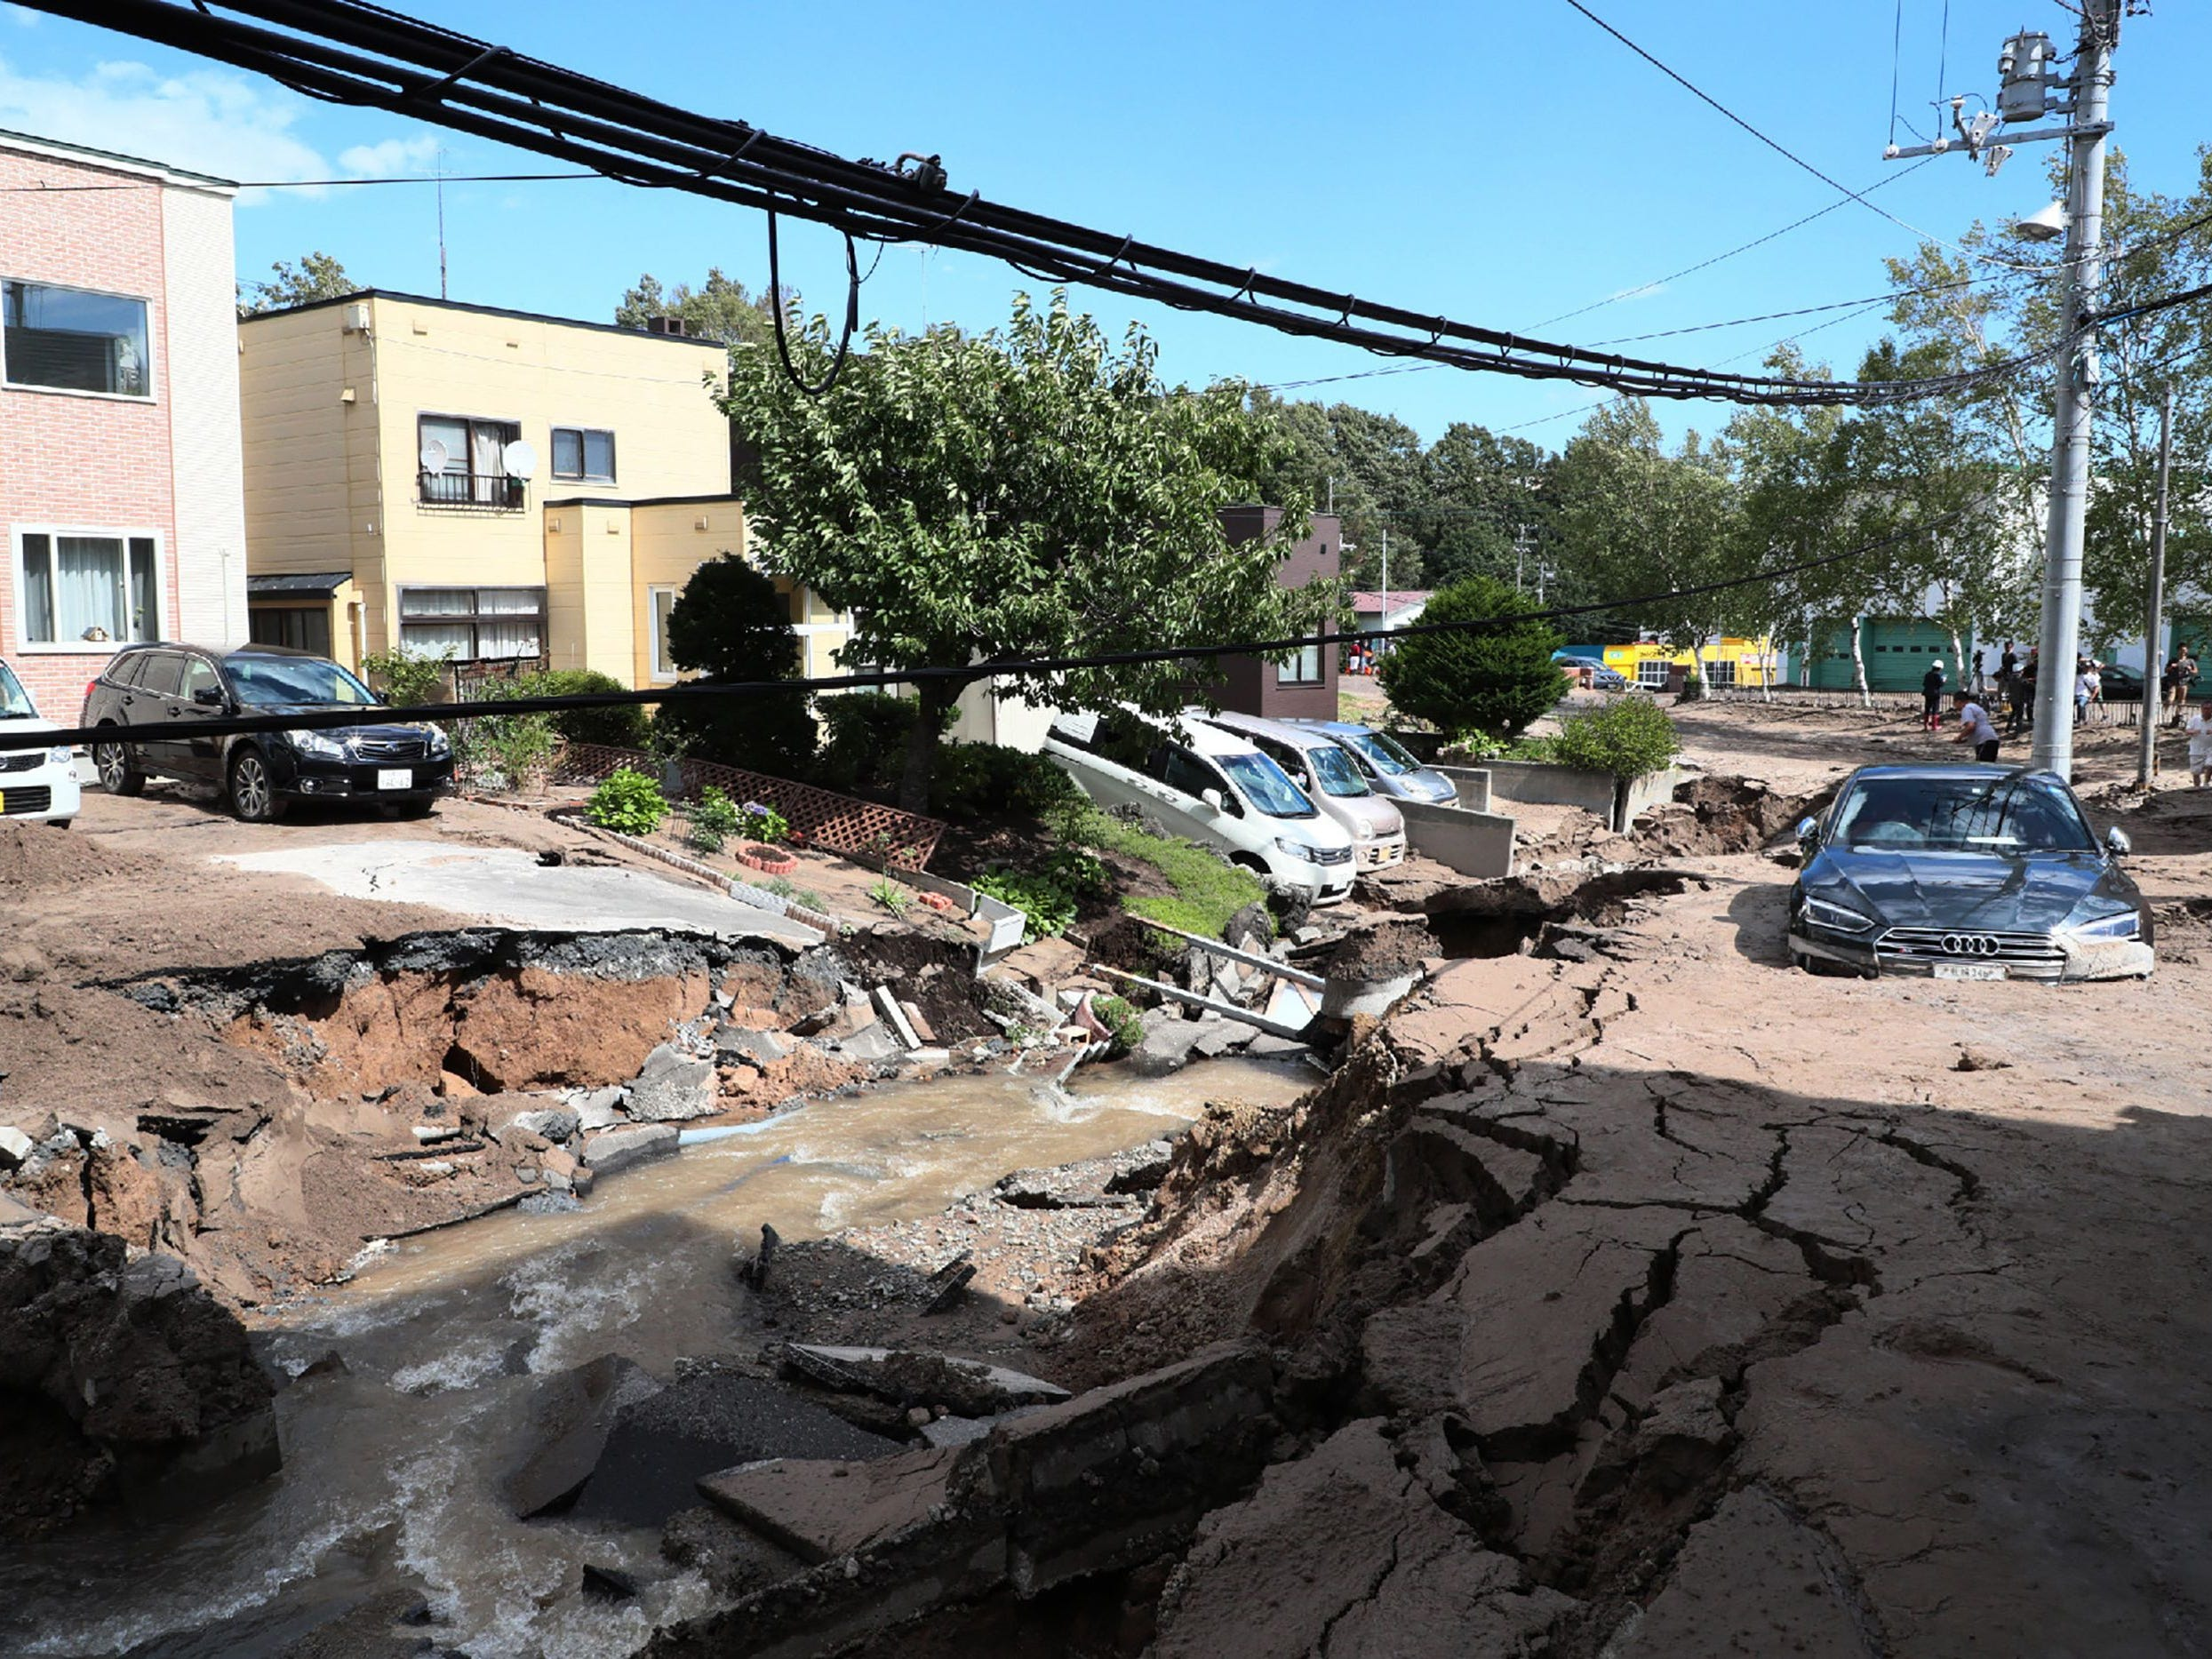 A car is stuck on a road damaged by an earthquake in Sapporo, Hokkaido prefecture on Sept. 6, 2018.